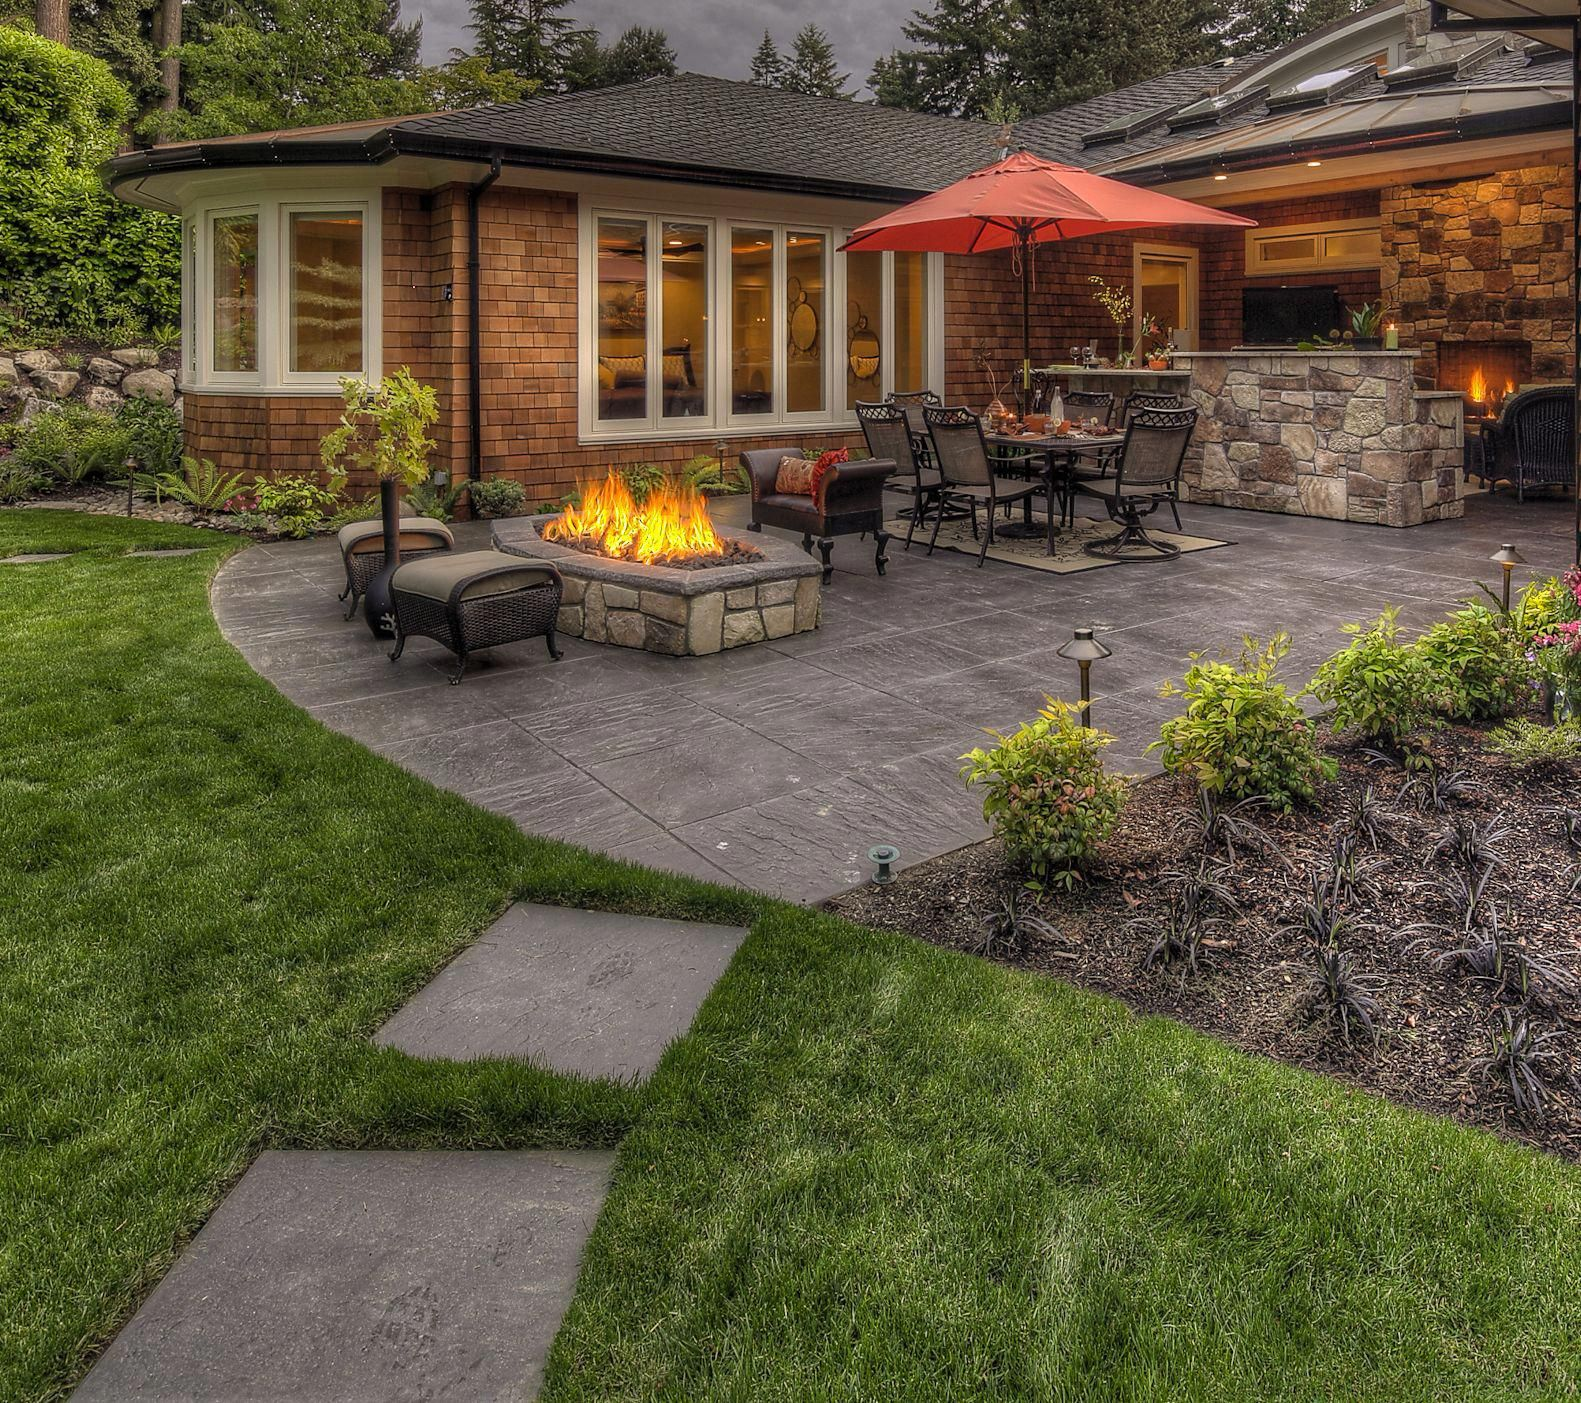 40 Best Backyards Ideas With Simple, Modern And Natural